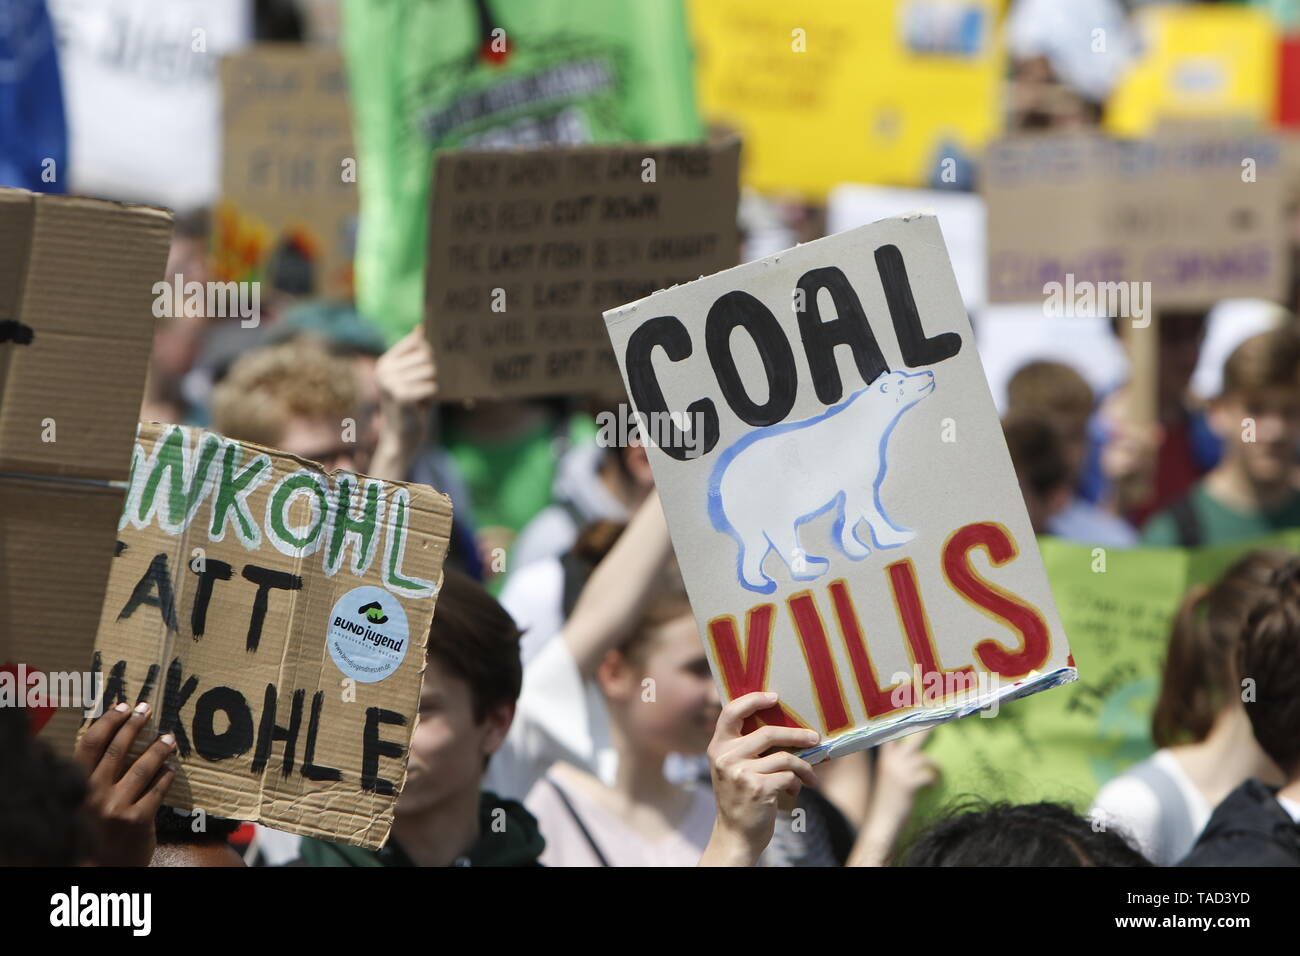 Frankfurt, Germany. 24th May 2019. A protester carries a sign that reads 'Coal kills' with a drawing of a polar bear. Around 4,500 young people marched through Frankfurt to the European Central Bank, to protest against the climate change and for the introduction of measurements against it. The protest took place as part of an Europe wide climate strike, two days ahead of the 2019 European elections. - Stock Image